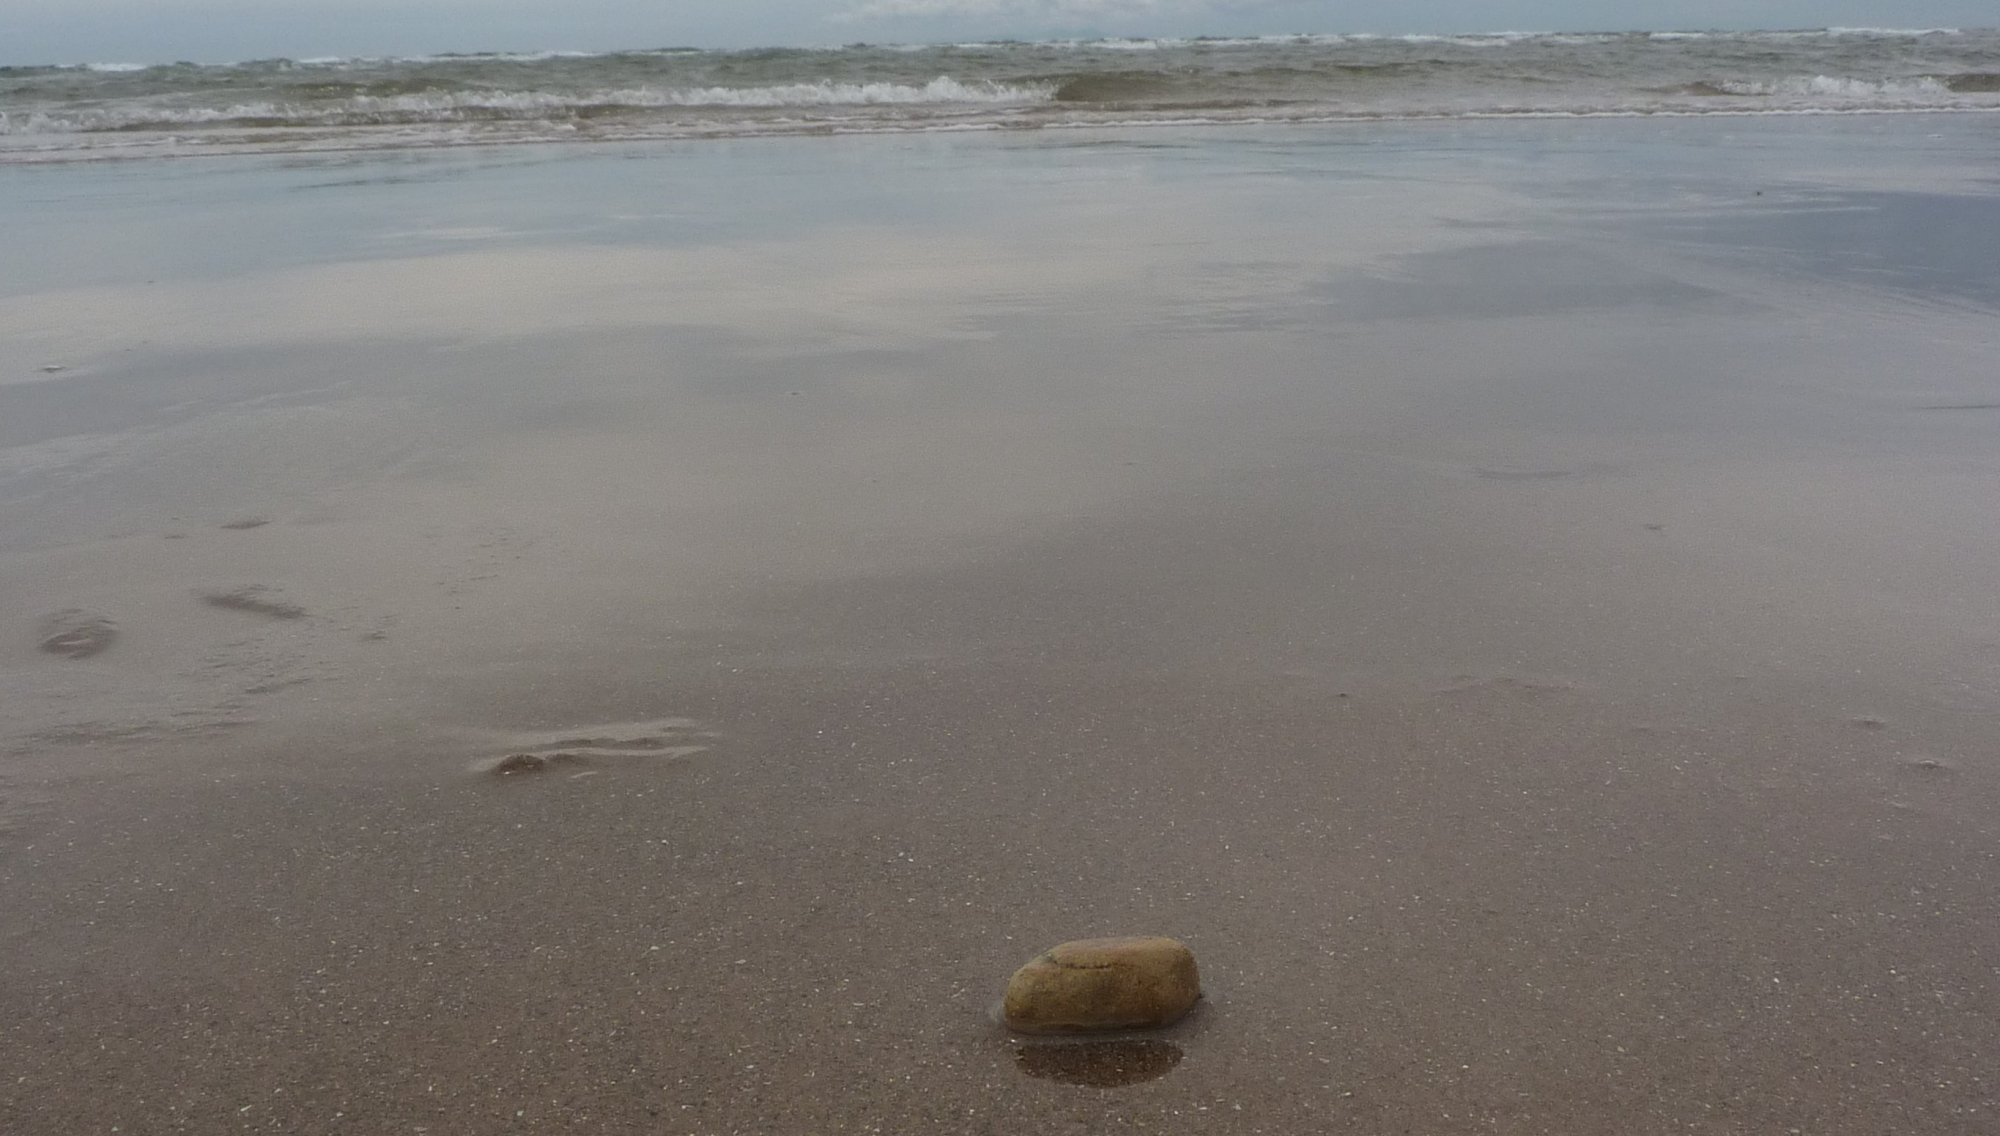 Pebble released into the Irish Sea